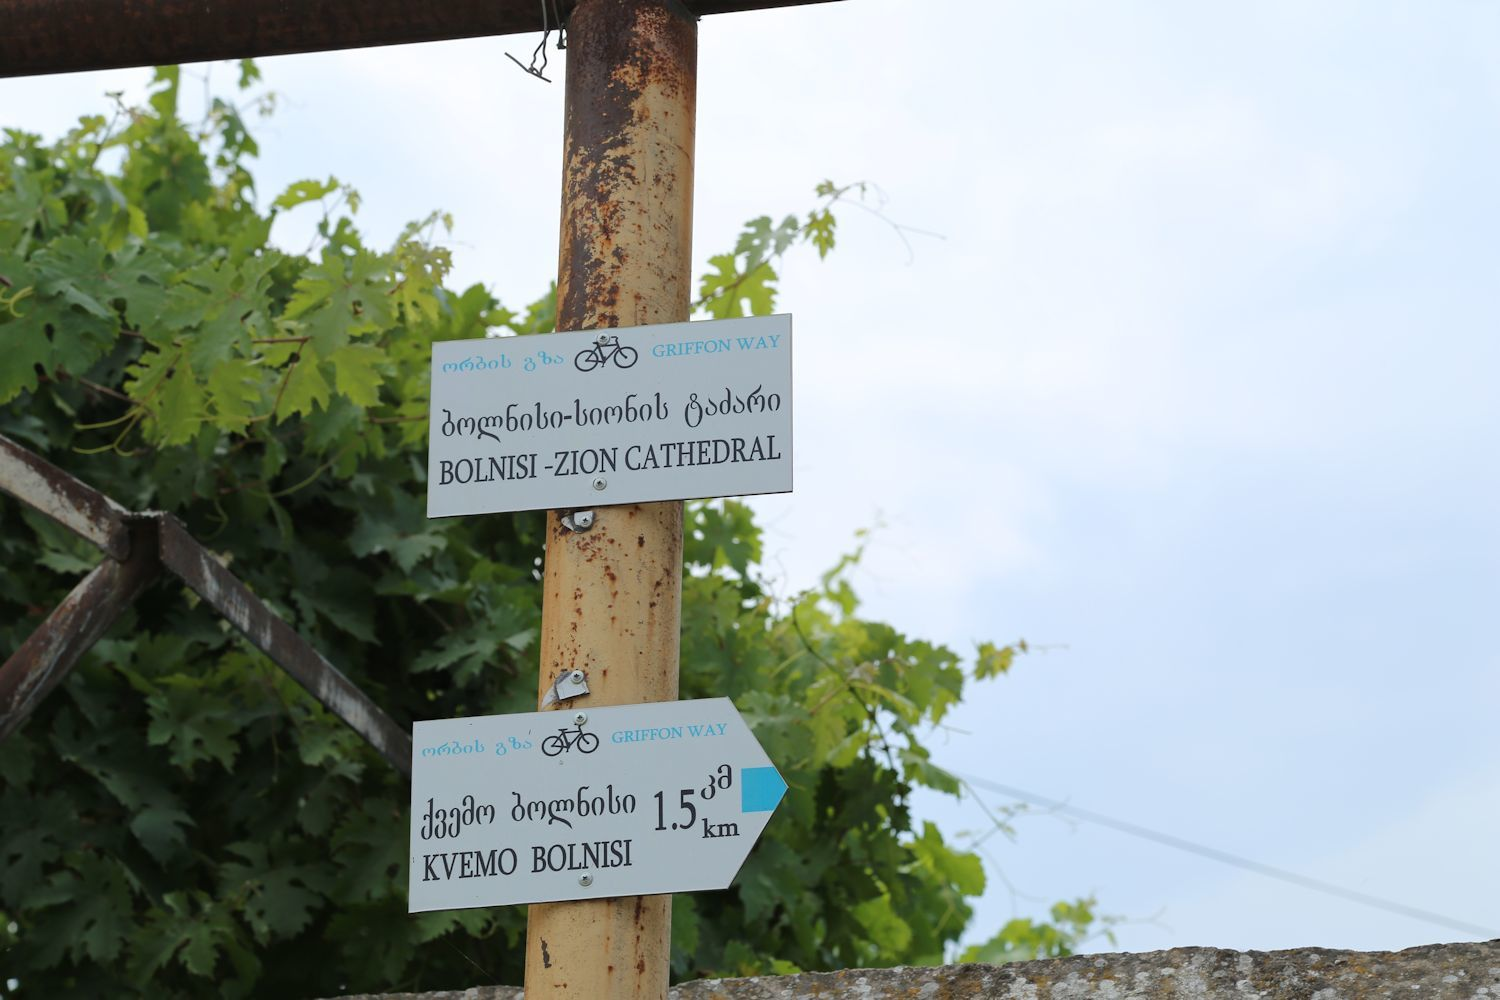 A modest Bolnisi Zion Cathedral sign